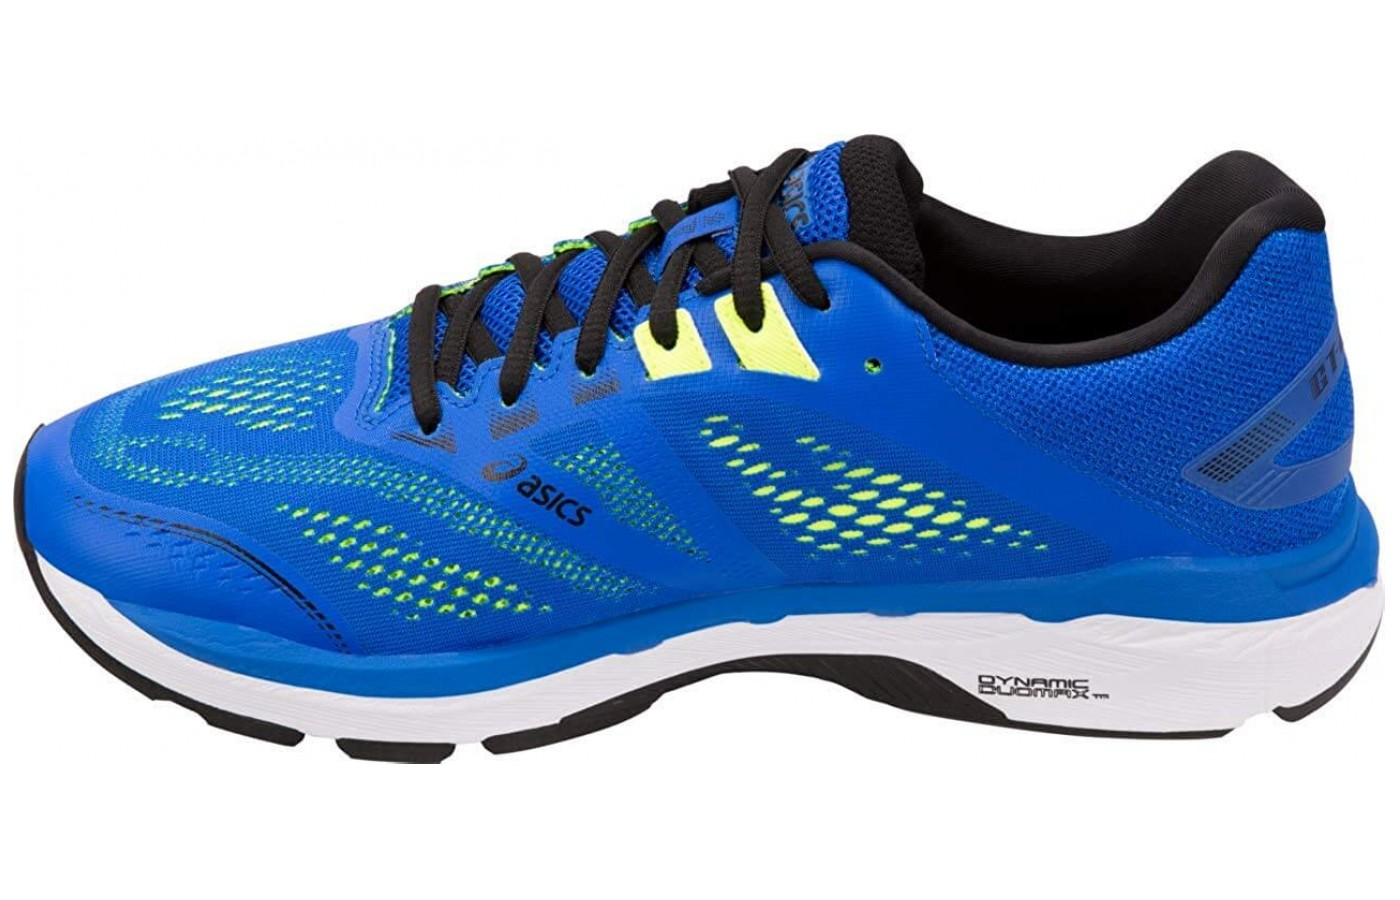 This model of ASICS is designed to be a street running shoe – paved roads are the intended surface area.